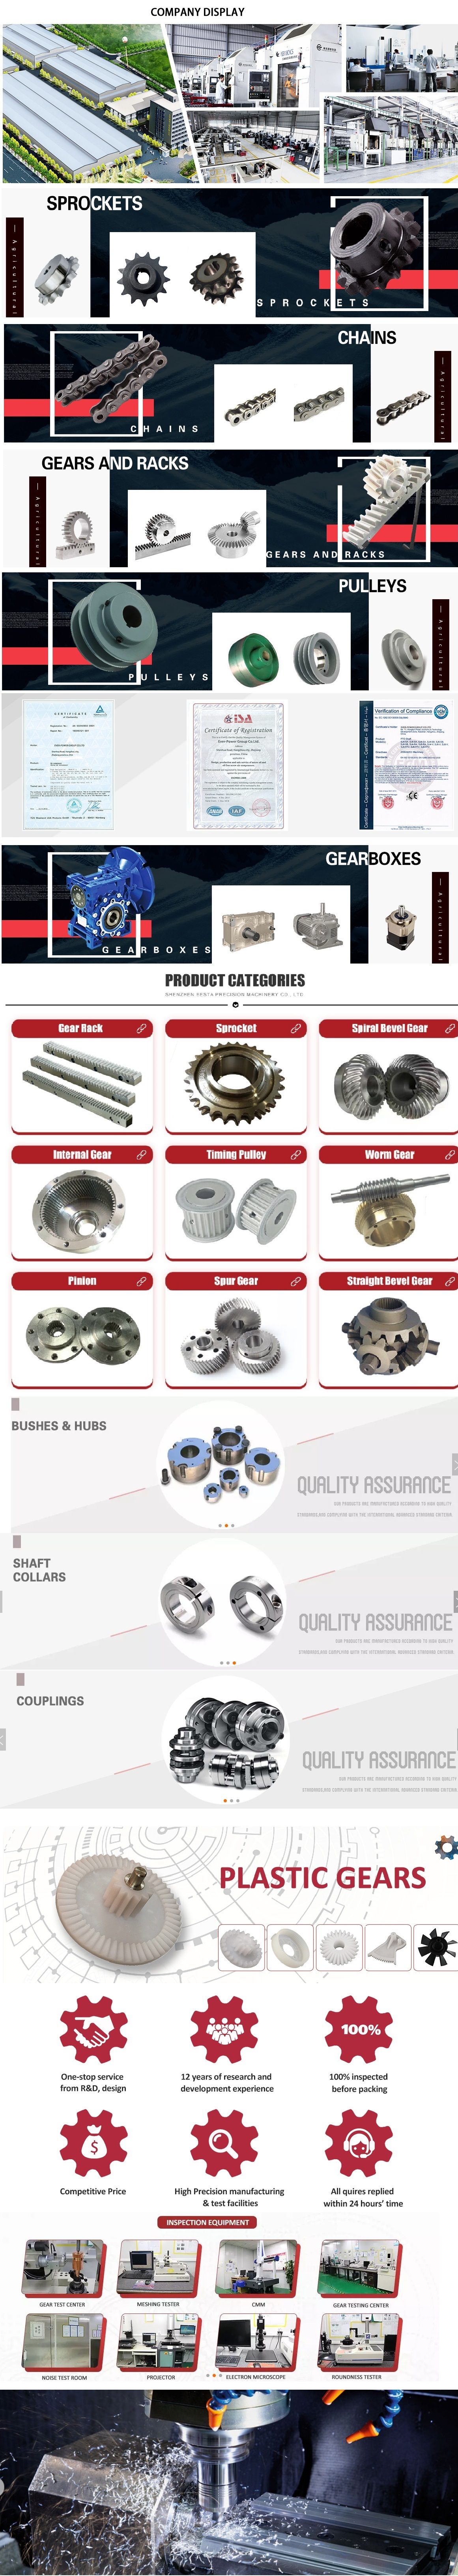 in Merca Somalia  sales   price   shop   near me   near me shop   factory   supplier 90 Degree Gearbox Low-Noise Bonfiglioli Version Gear Box DC Motor Worm Planetary Motoreductor Transmission Auto Parts Machine Gearbox manufacturer   best   Cost   Custom   Cheap   wholesaler